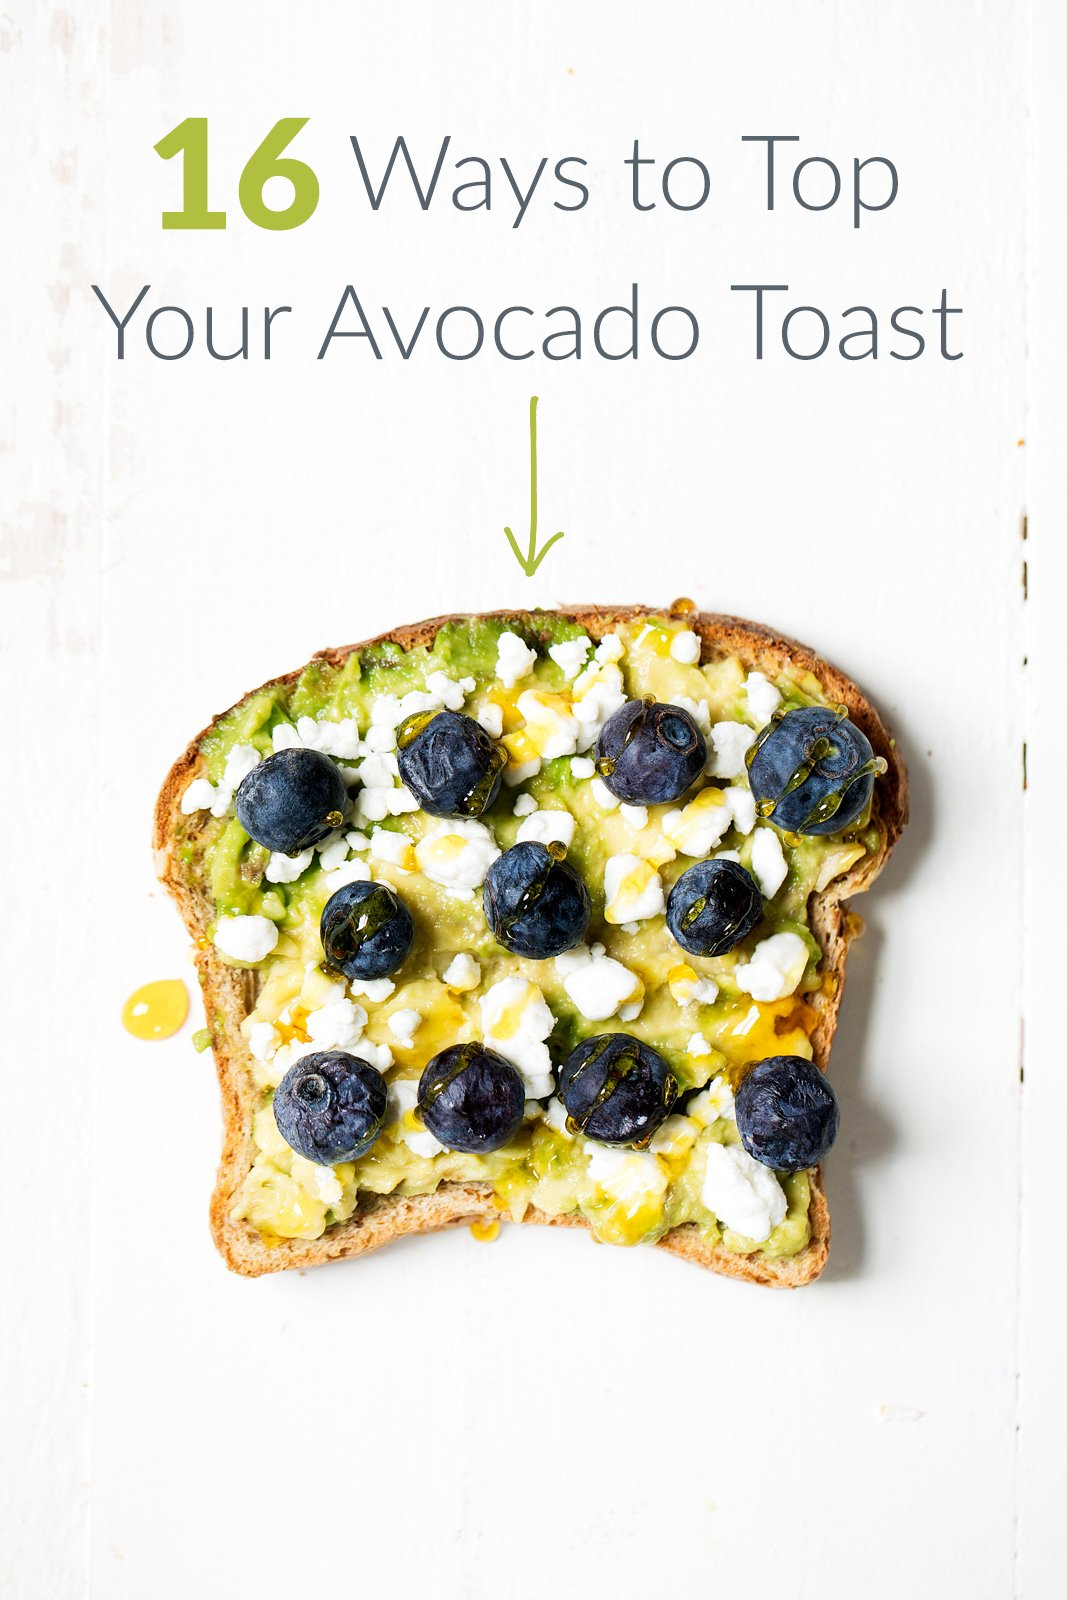 16 ways to top your avocado toast with text overlay